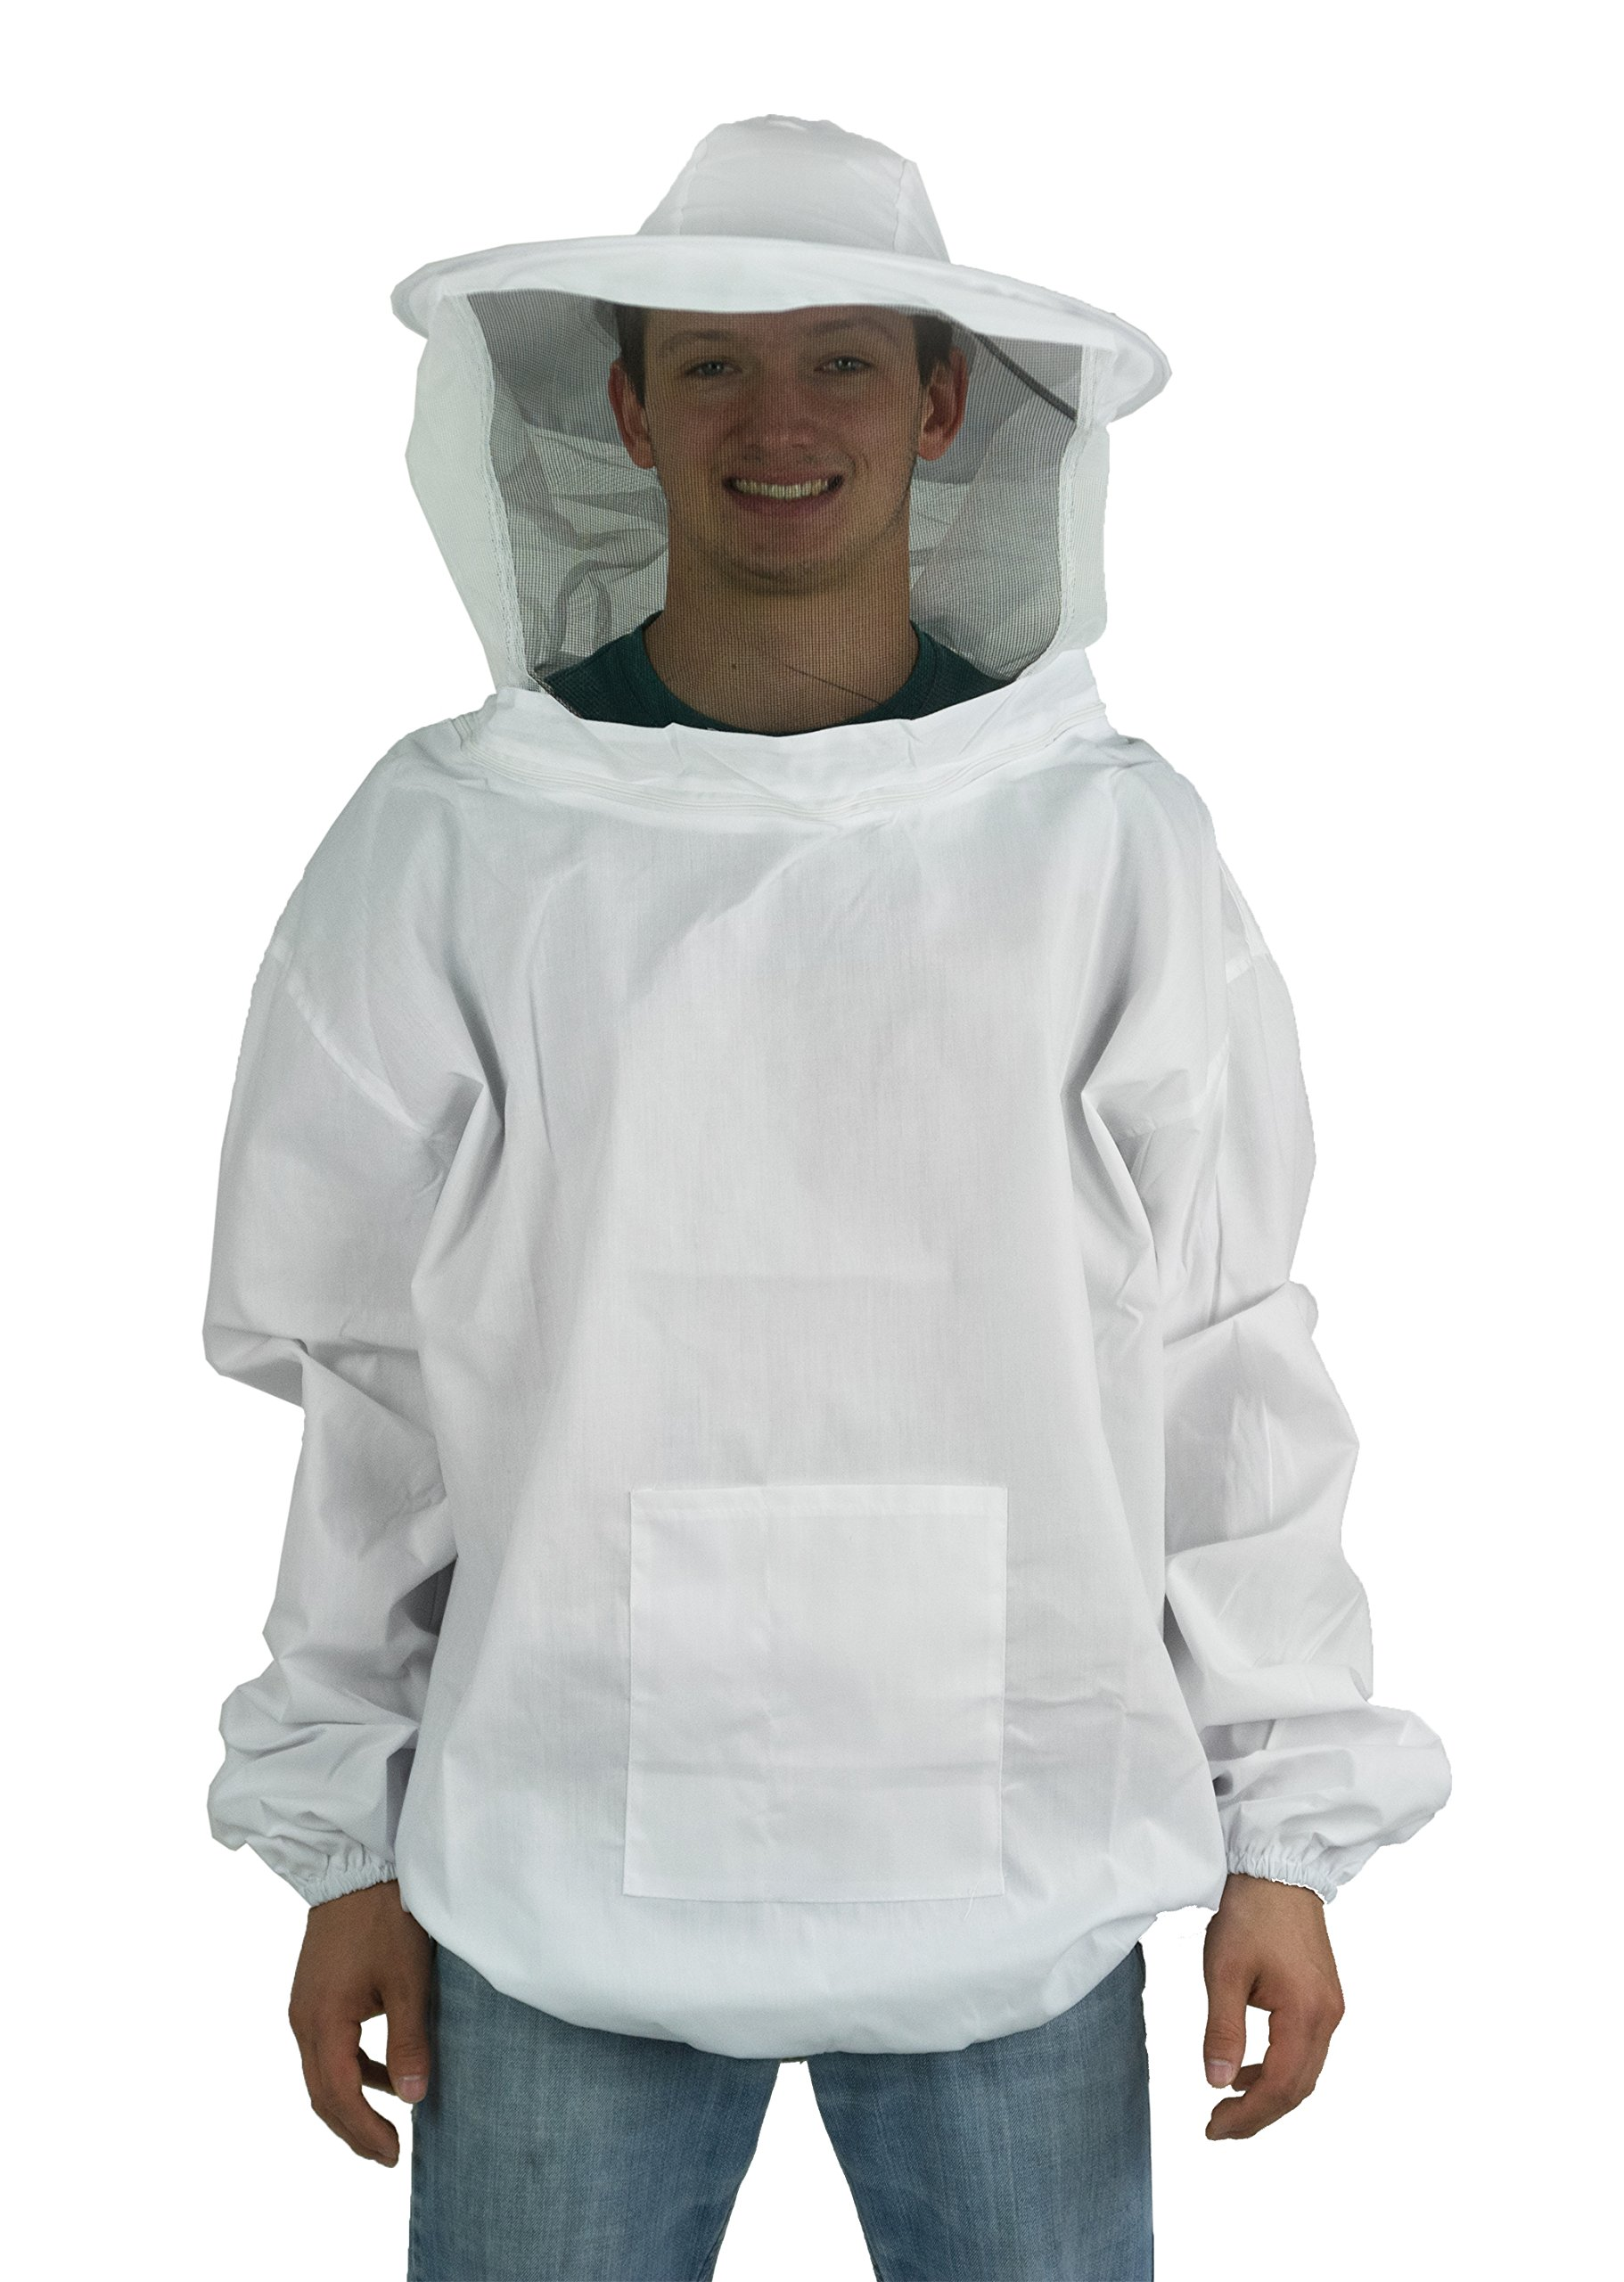 VIVO New Professional White Medium/Large Beekeeping/Bee Keeping Suit, Jacket, Pull Over, Smock with a Veil by (BEE-V105)